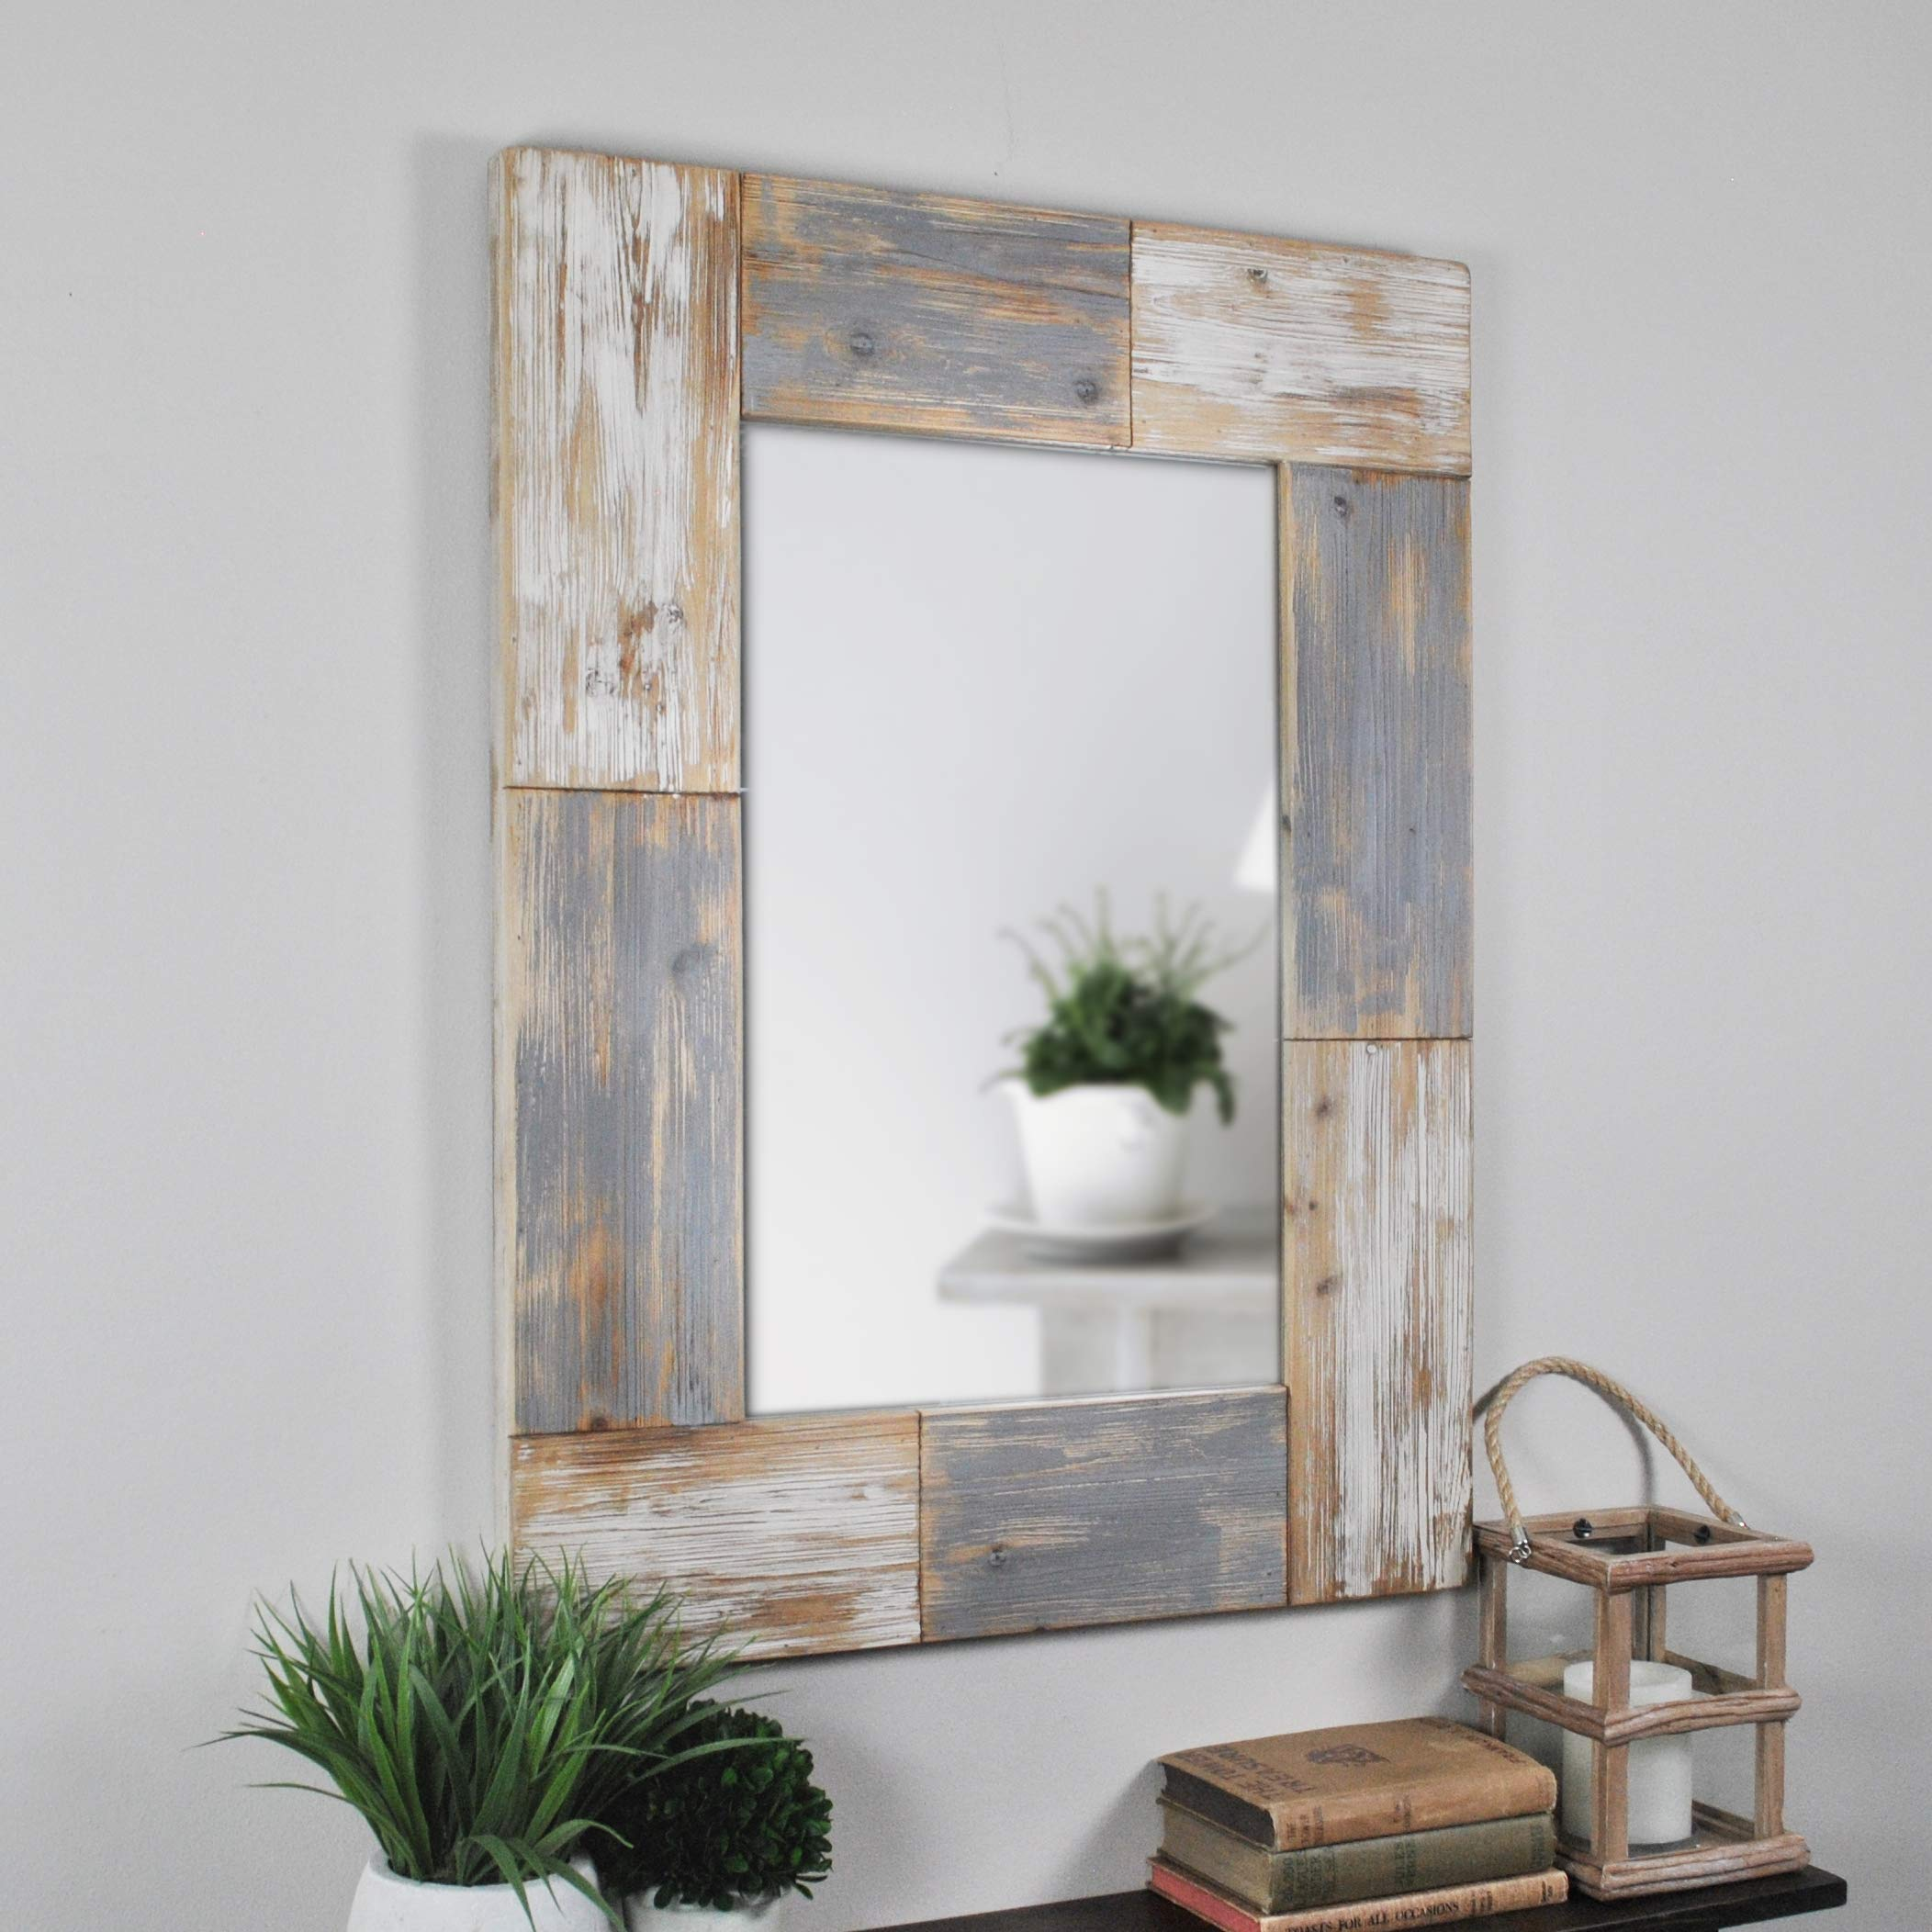 FirsTime & Co. 70001 Mason Planks Wall Mirror, 31.5'' H x 24'' W, Aged White & Gray Wood